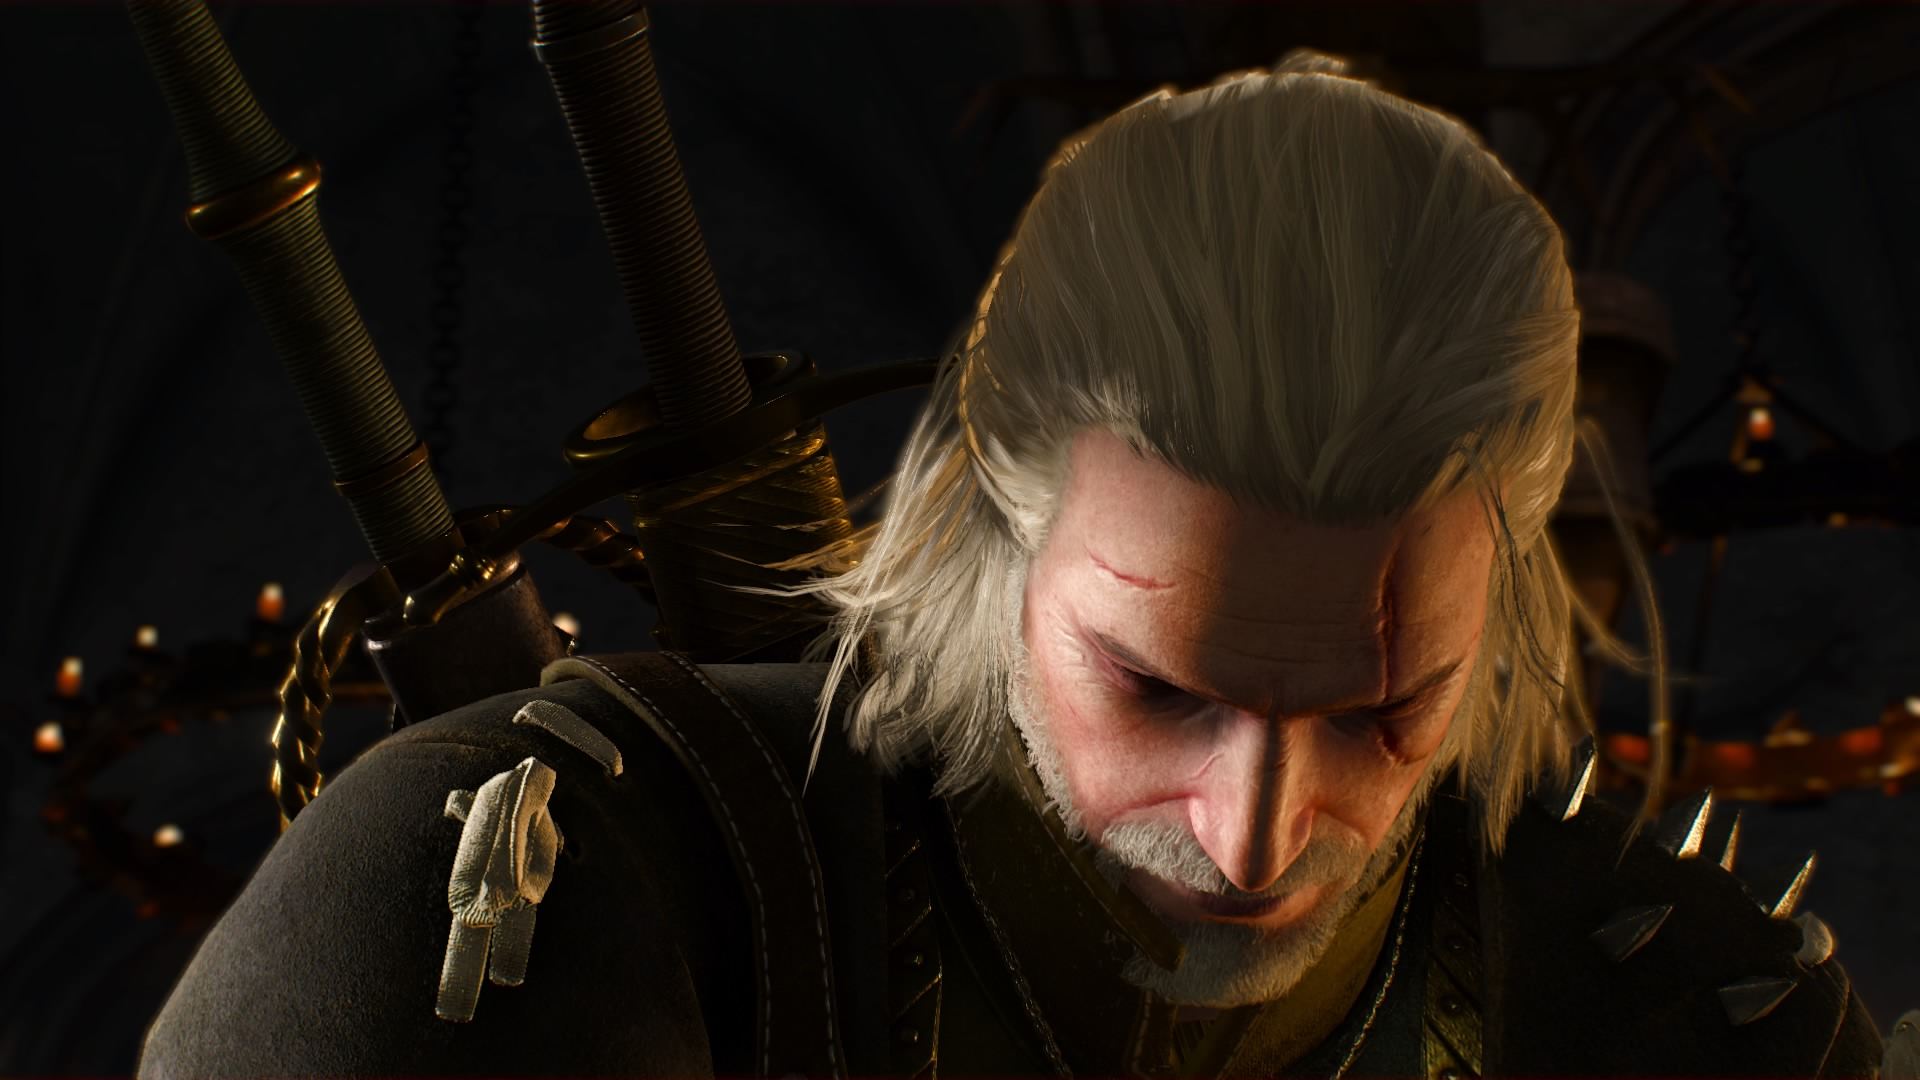 A close up of Geralt as he looks down. From The Witcher 3 video game.